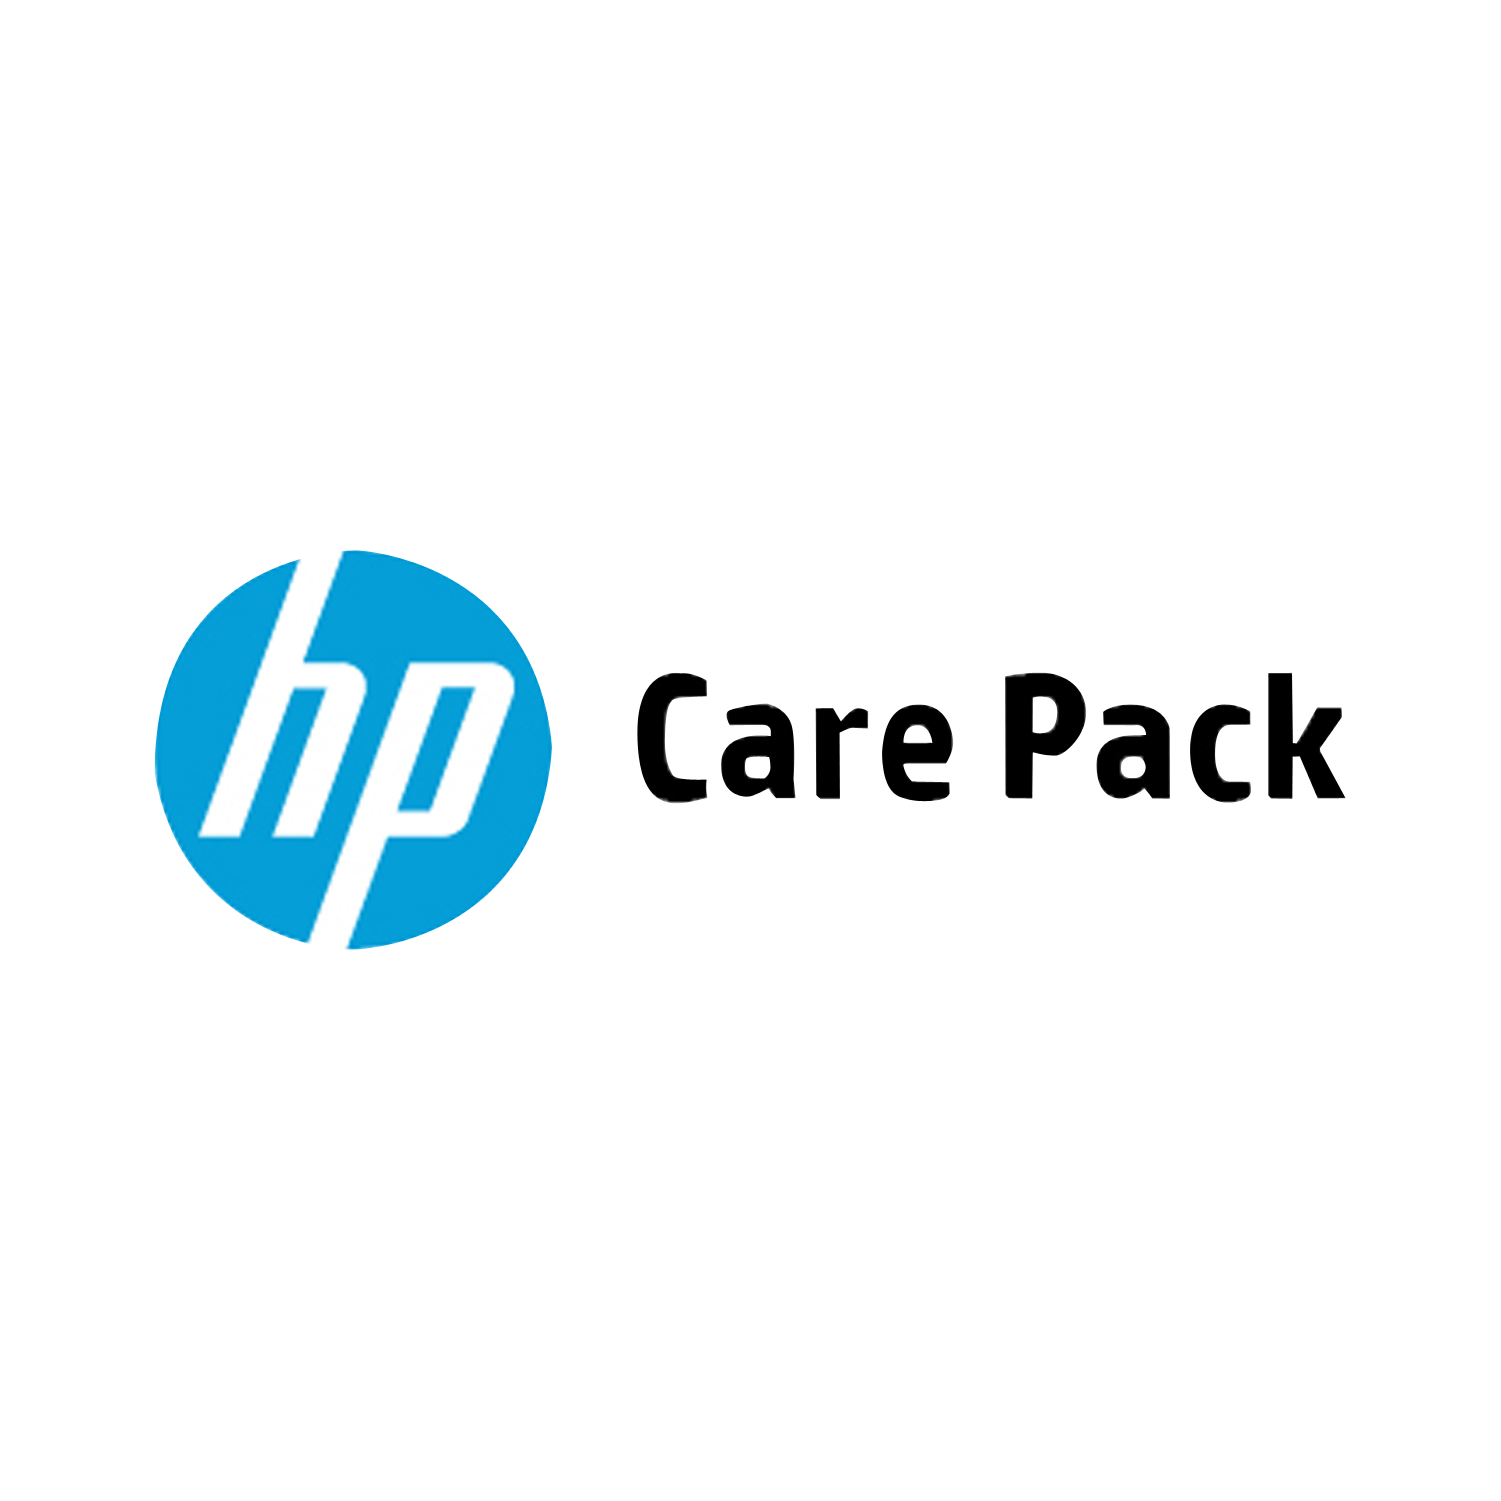 HP 4 Year ECare Pack Next Business Day On Site For HP LaserJet M401 U4TQ2E - C2000